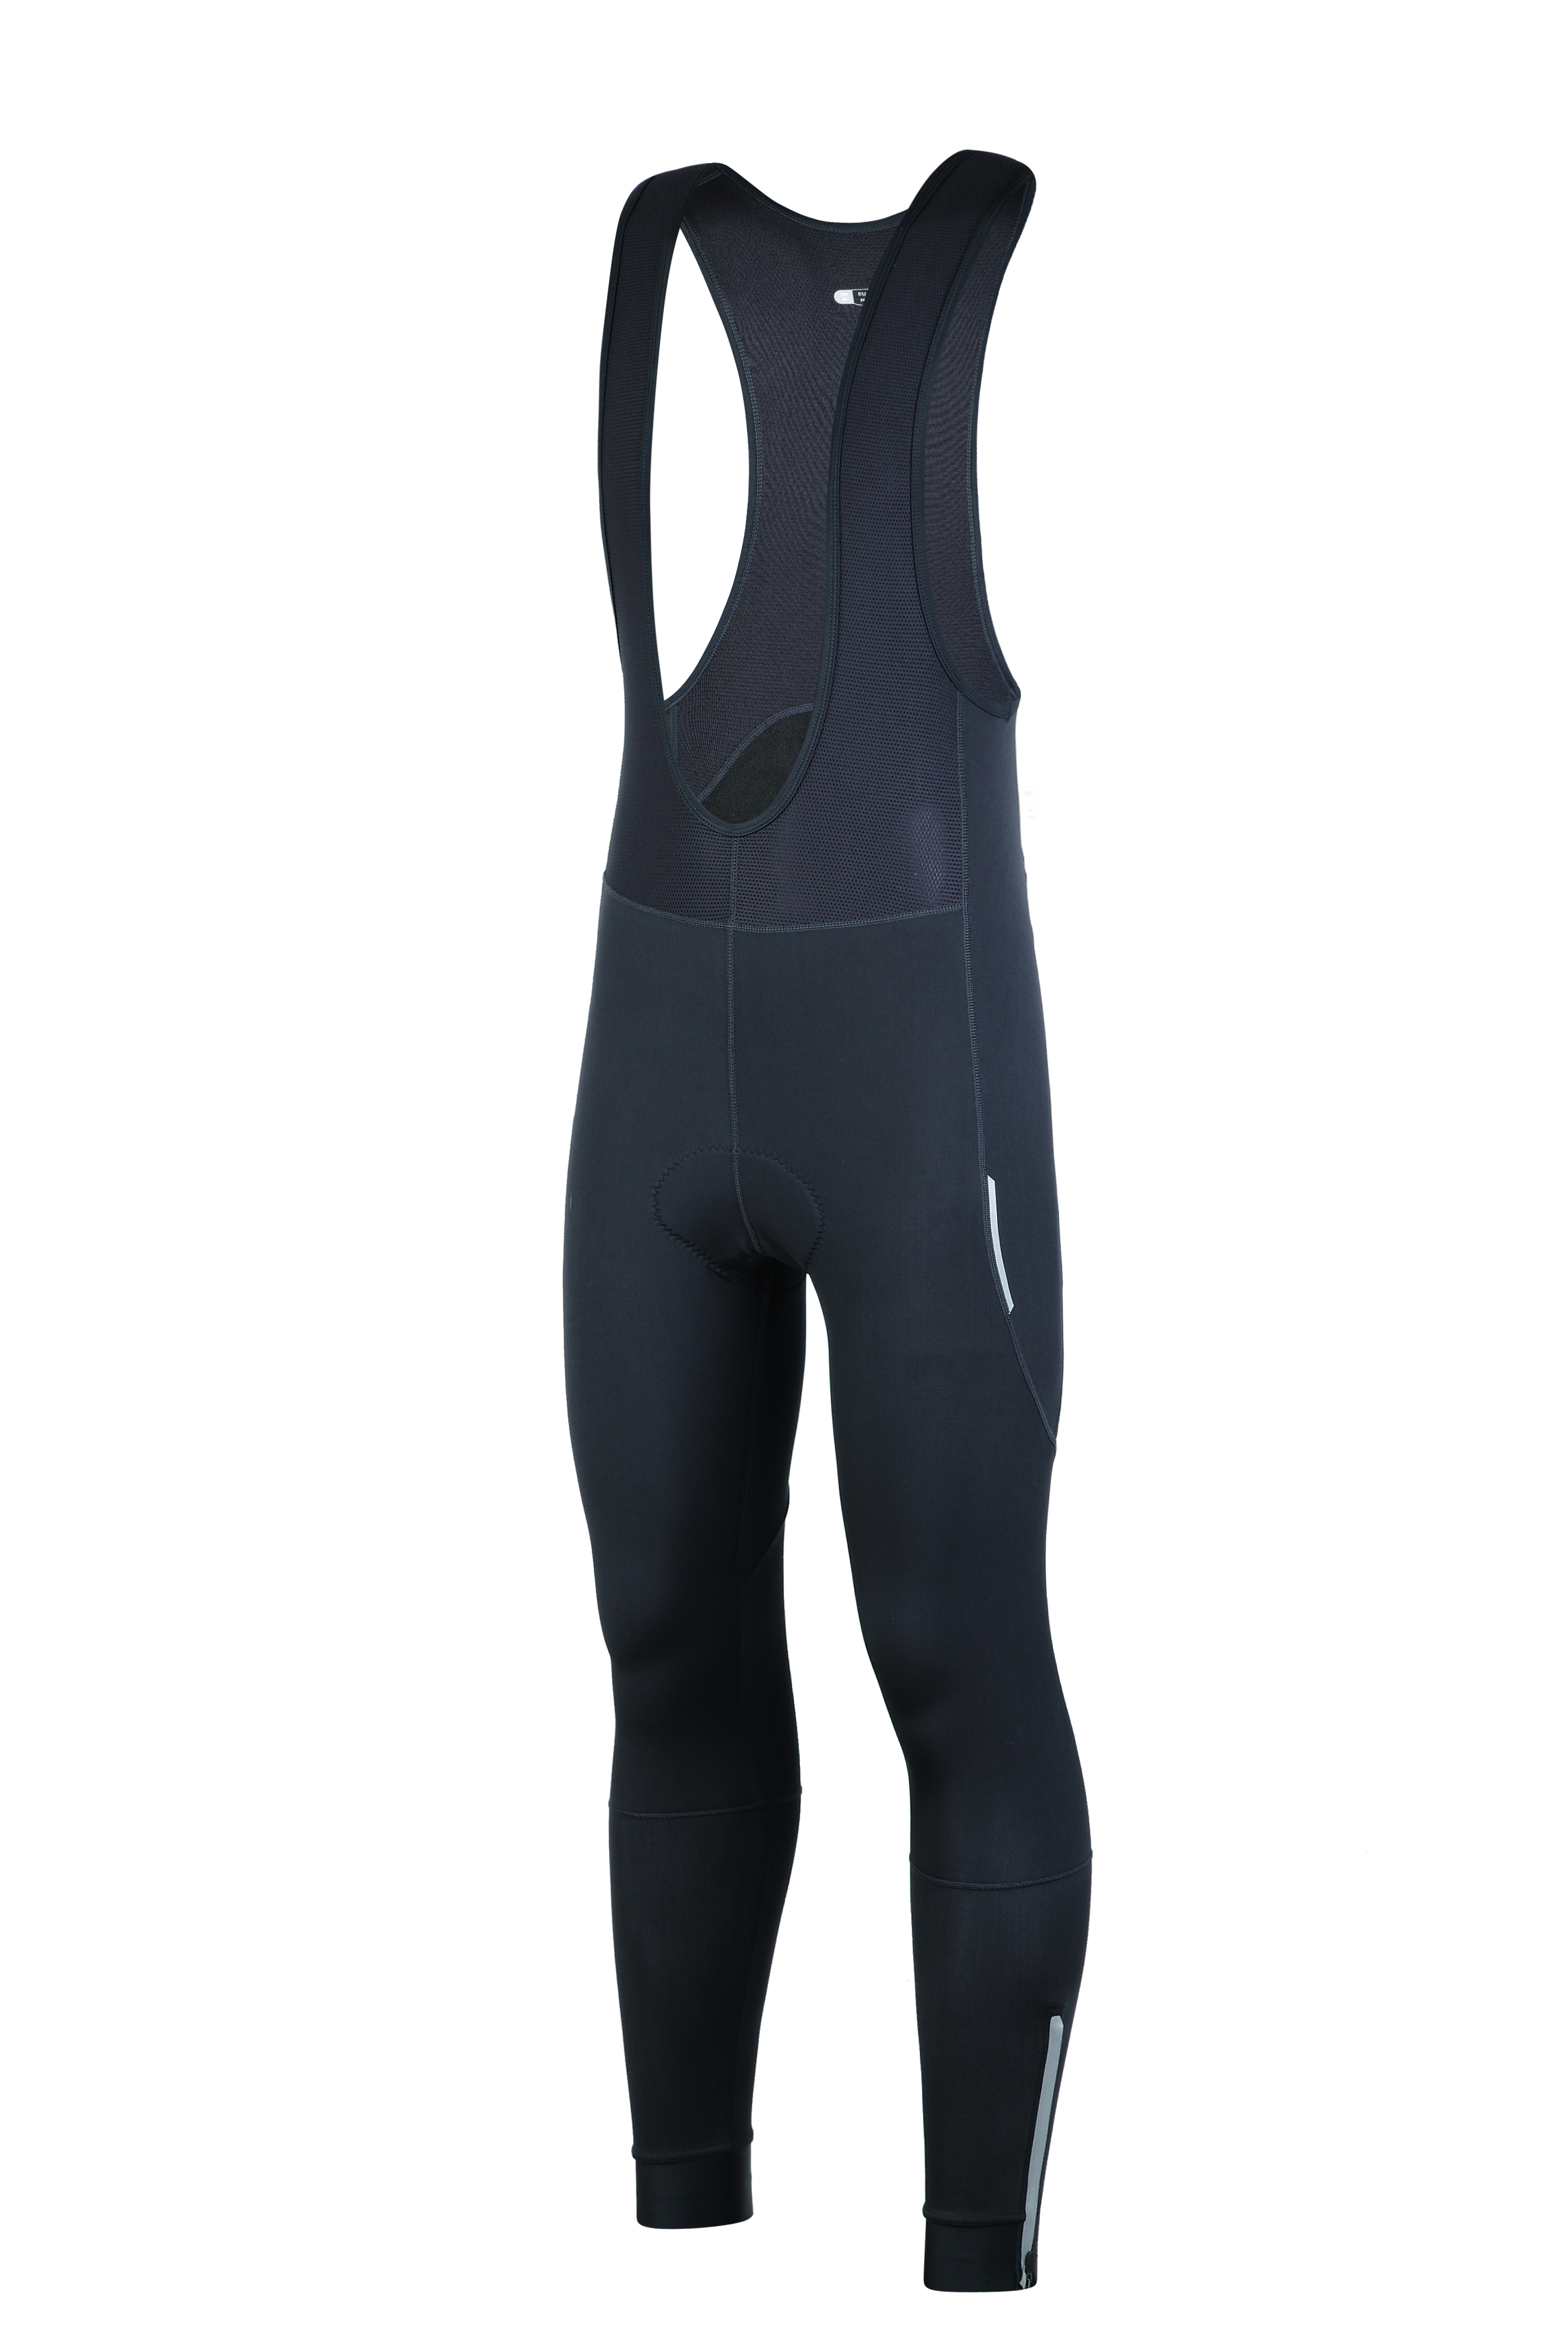 Men's knitted cycling BibTight.